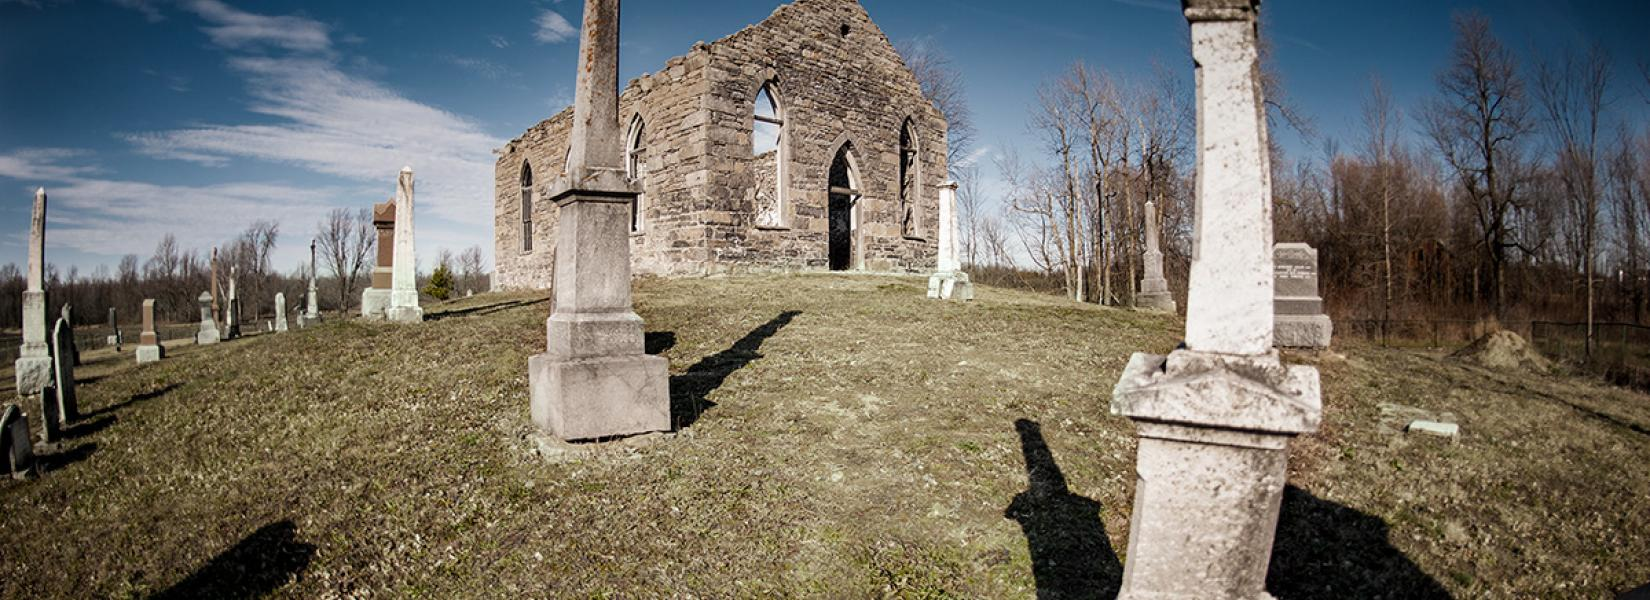 The abandoned church and cemetery of Rivière-La Guerre